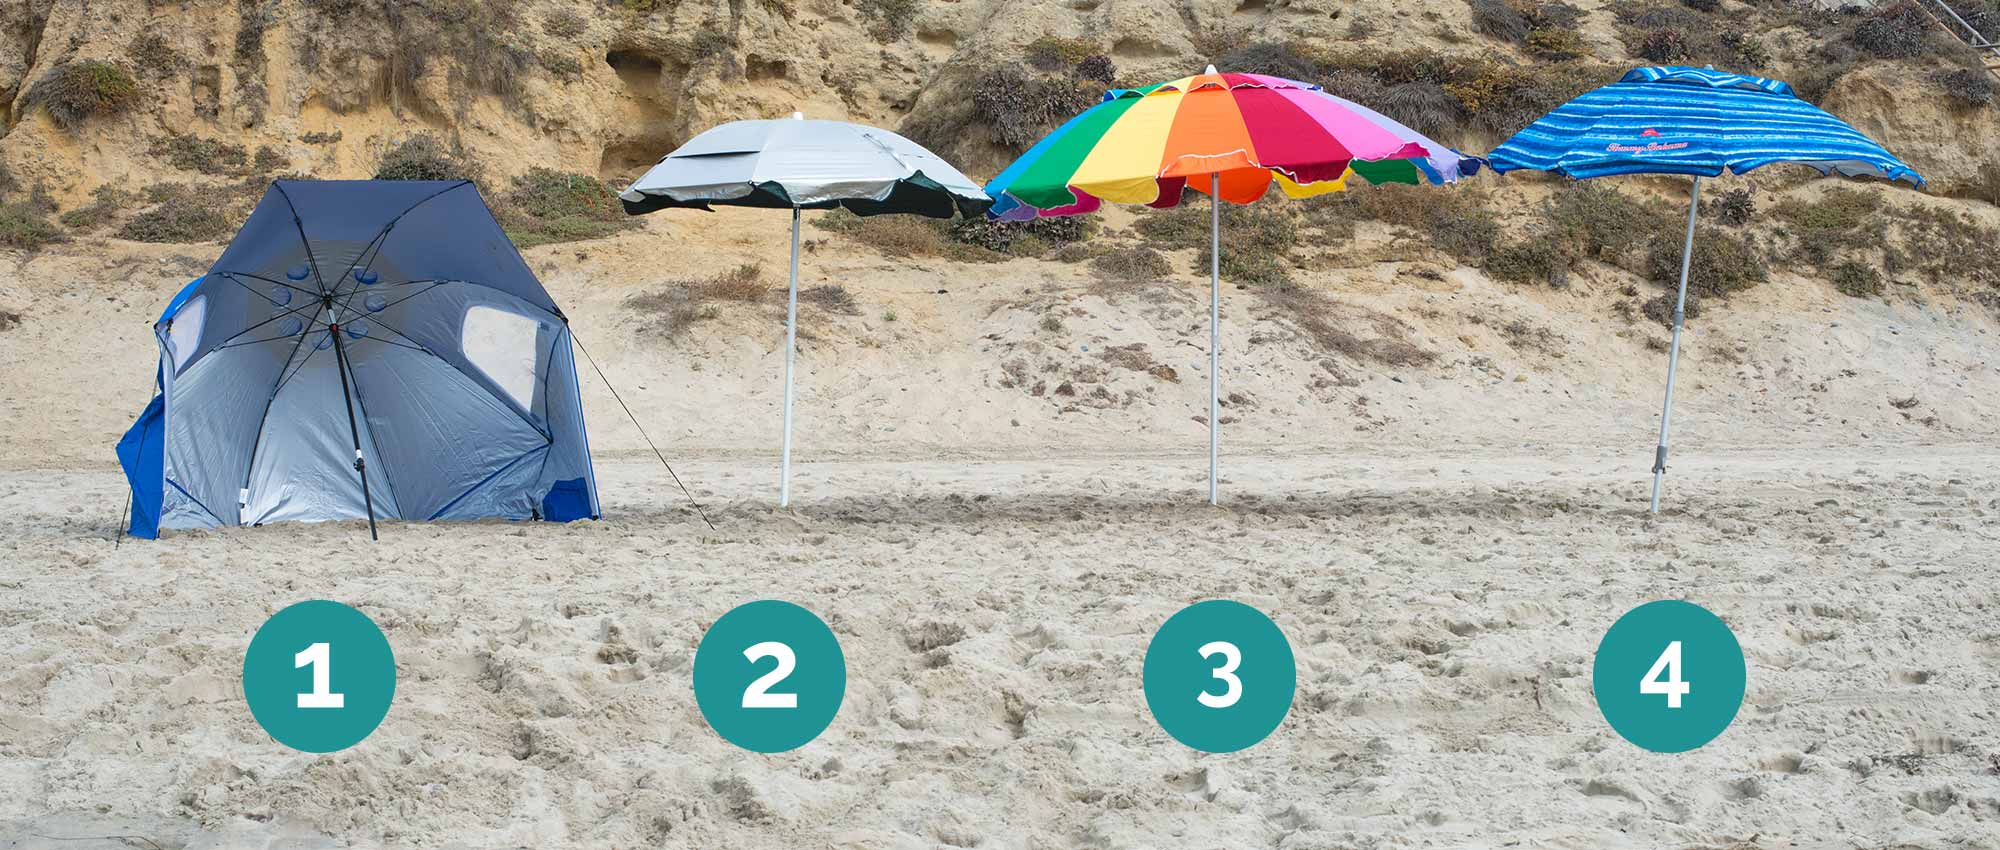 The Best Beach Umbrellas Chairs  Tents of 2019 Beach